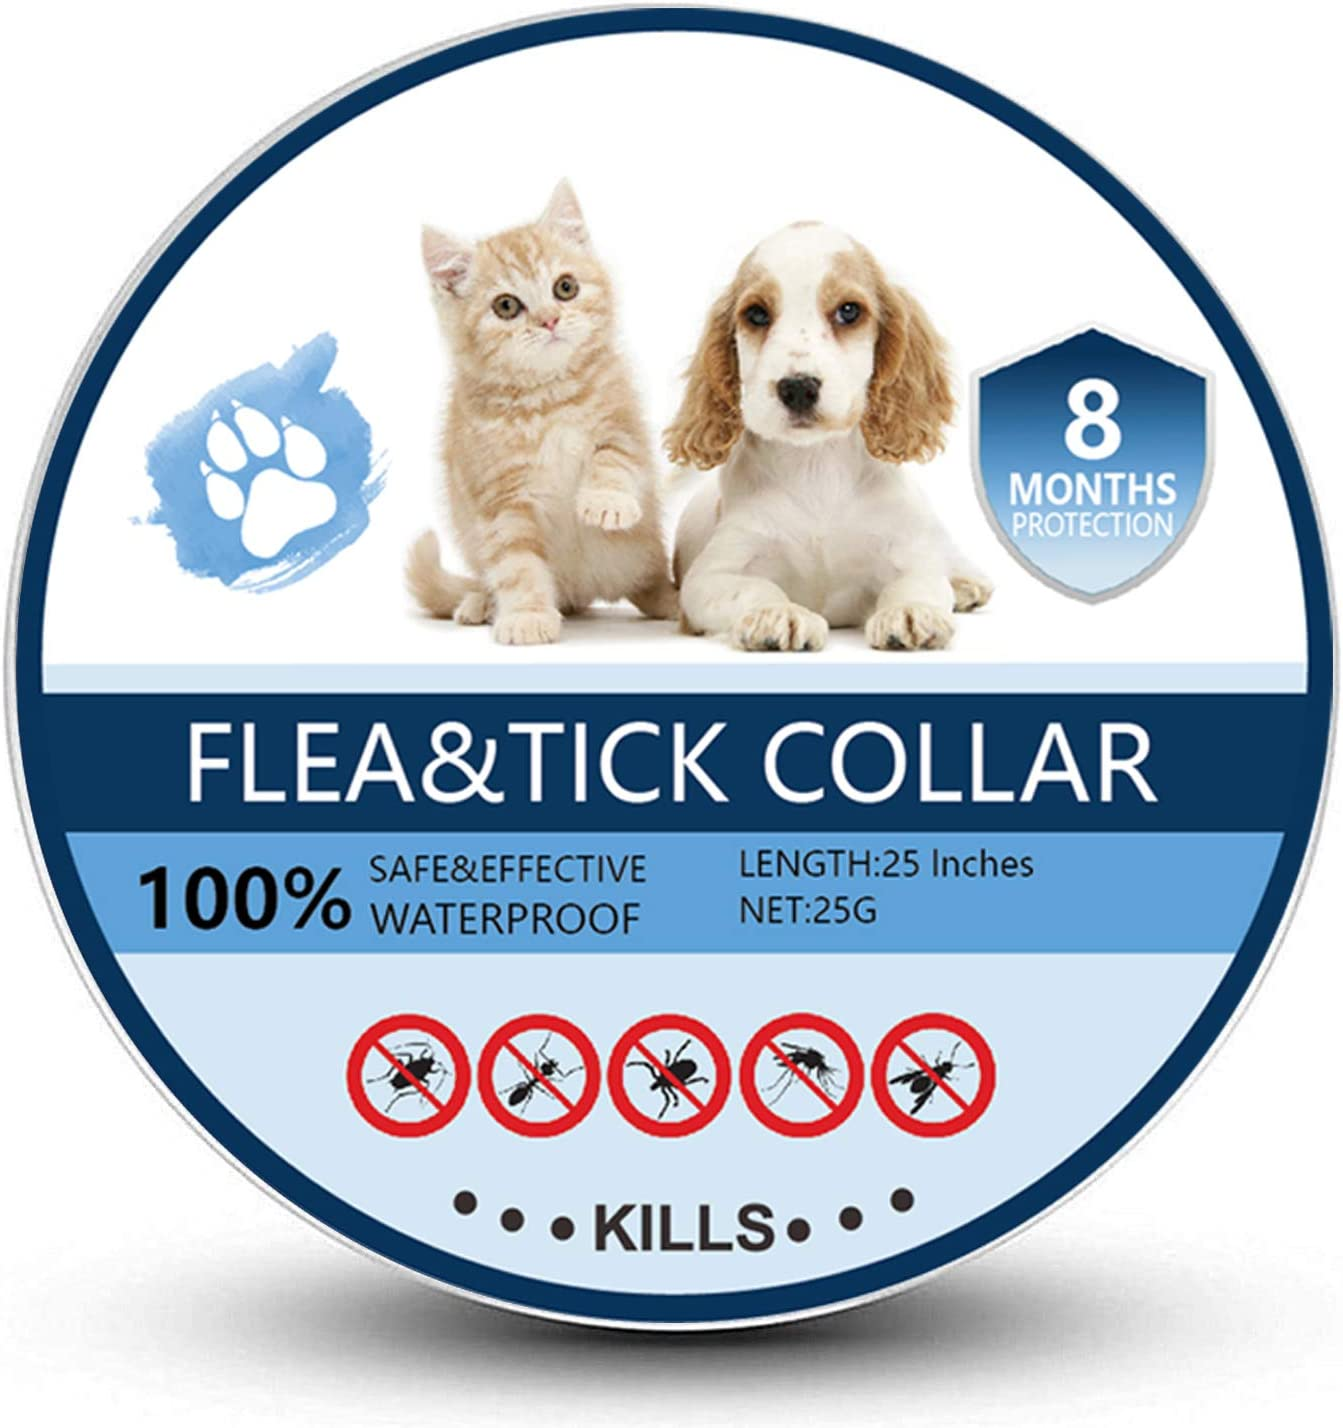 Bomior Flea and Tick Collar for Dogs & Cats - 8 Months Protection - Safe, Adjustable and Waterproof Design - Natural Ingredients Removes Fleas and Tick...